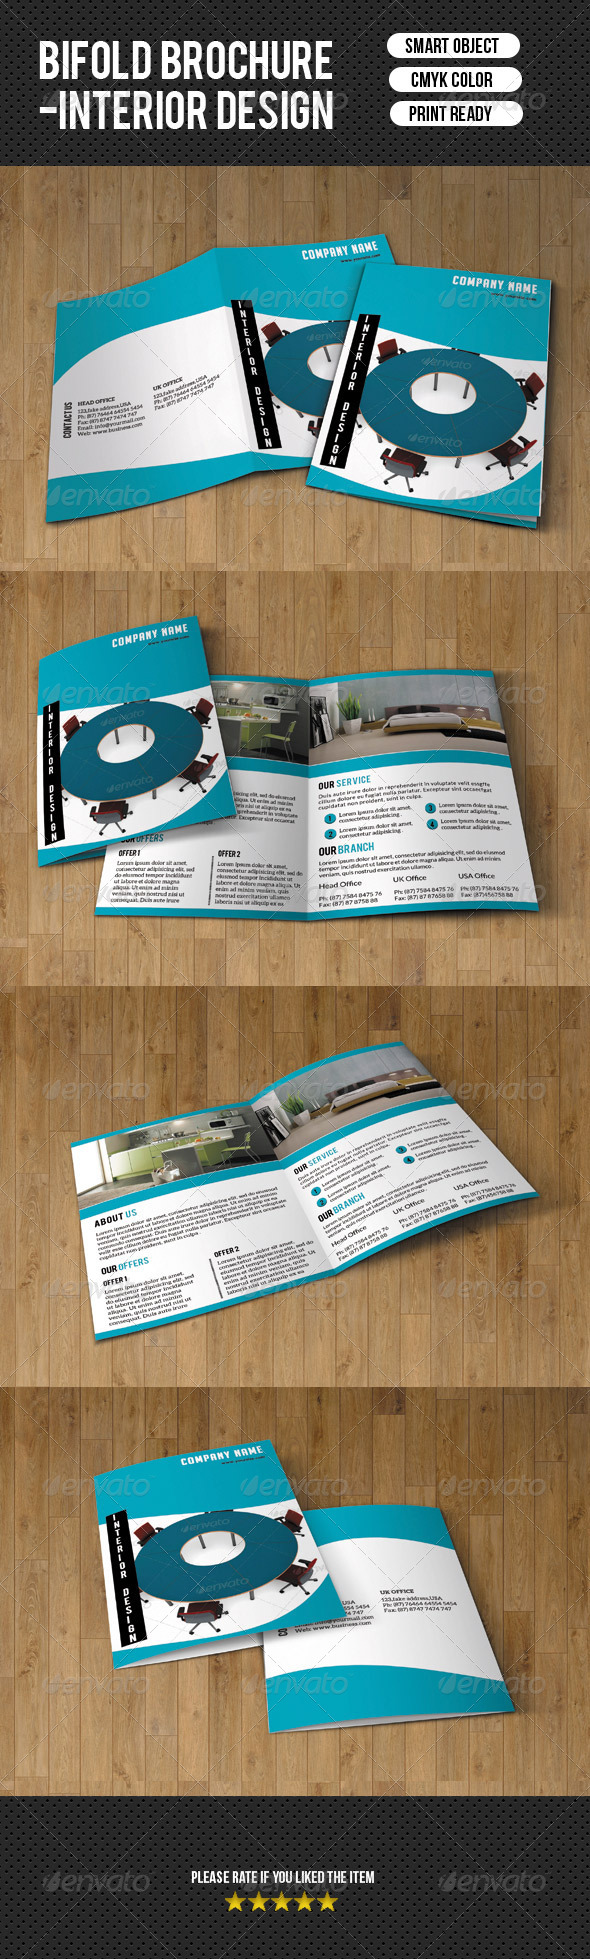 Minimal Bifold-Interior Design - Corporate Brochures